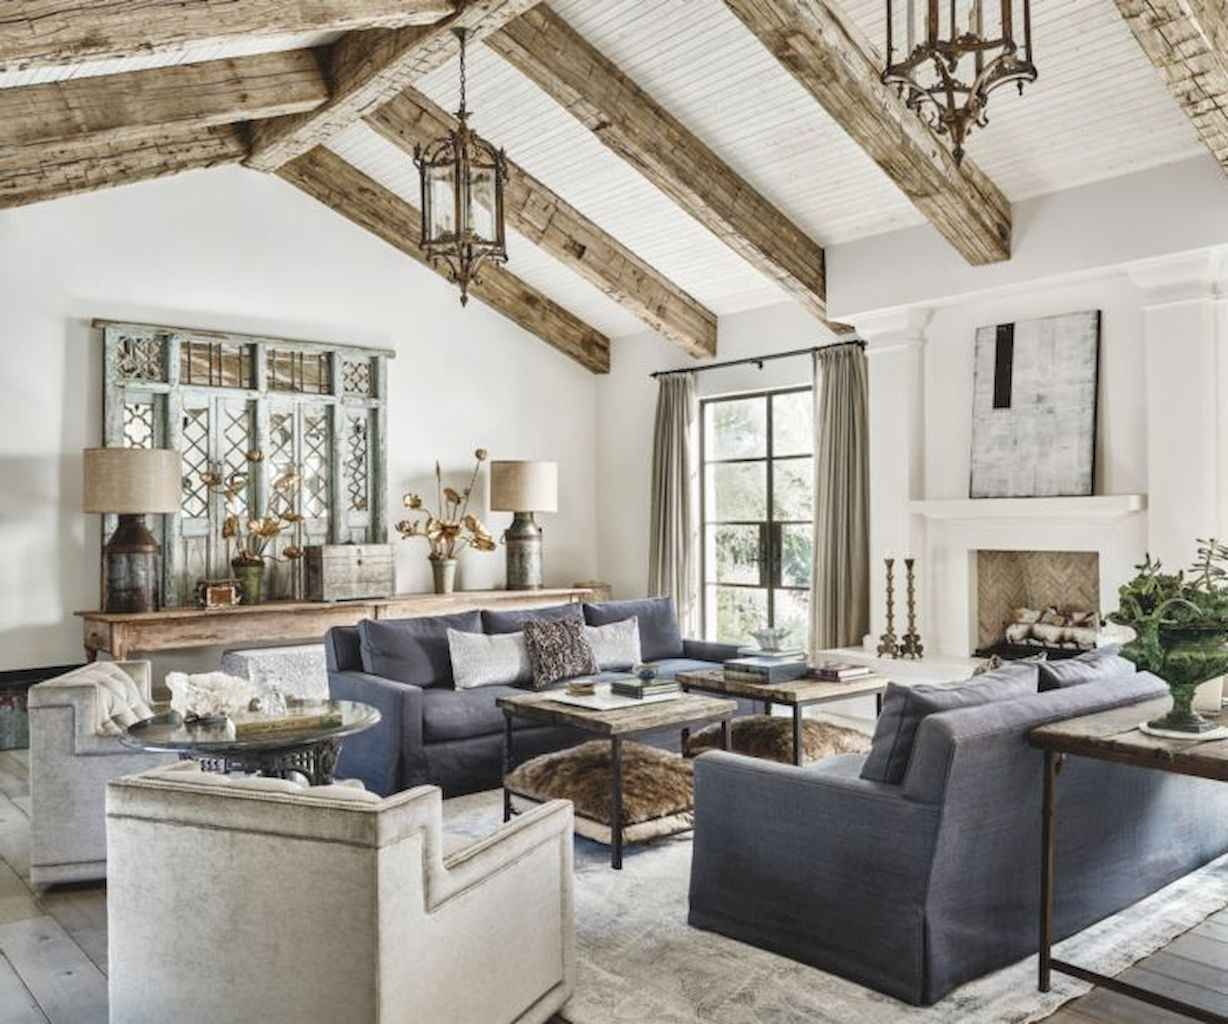 65 Incredible French Country Living Room Decor Ideas Homixover Com Farm House Living Room French Country Living Room Rustic Living Room